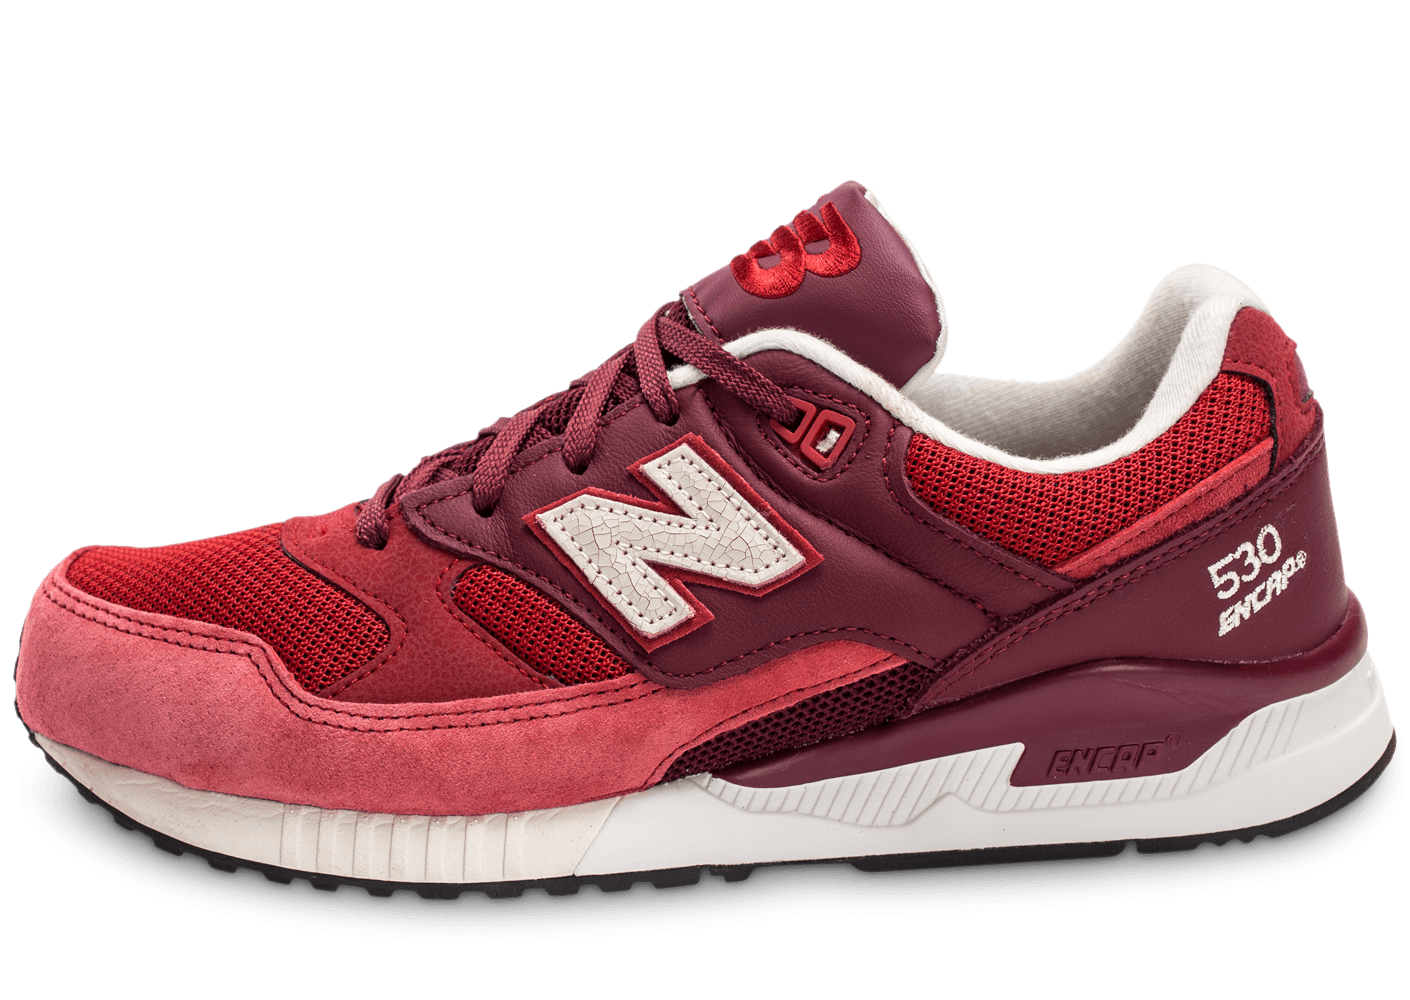 new balance 530 rouge noir